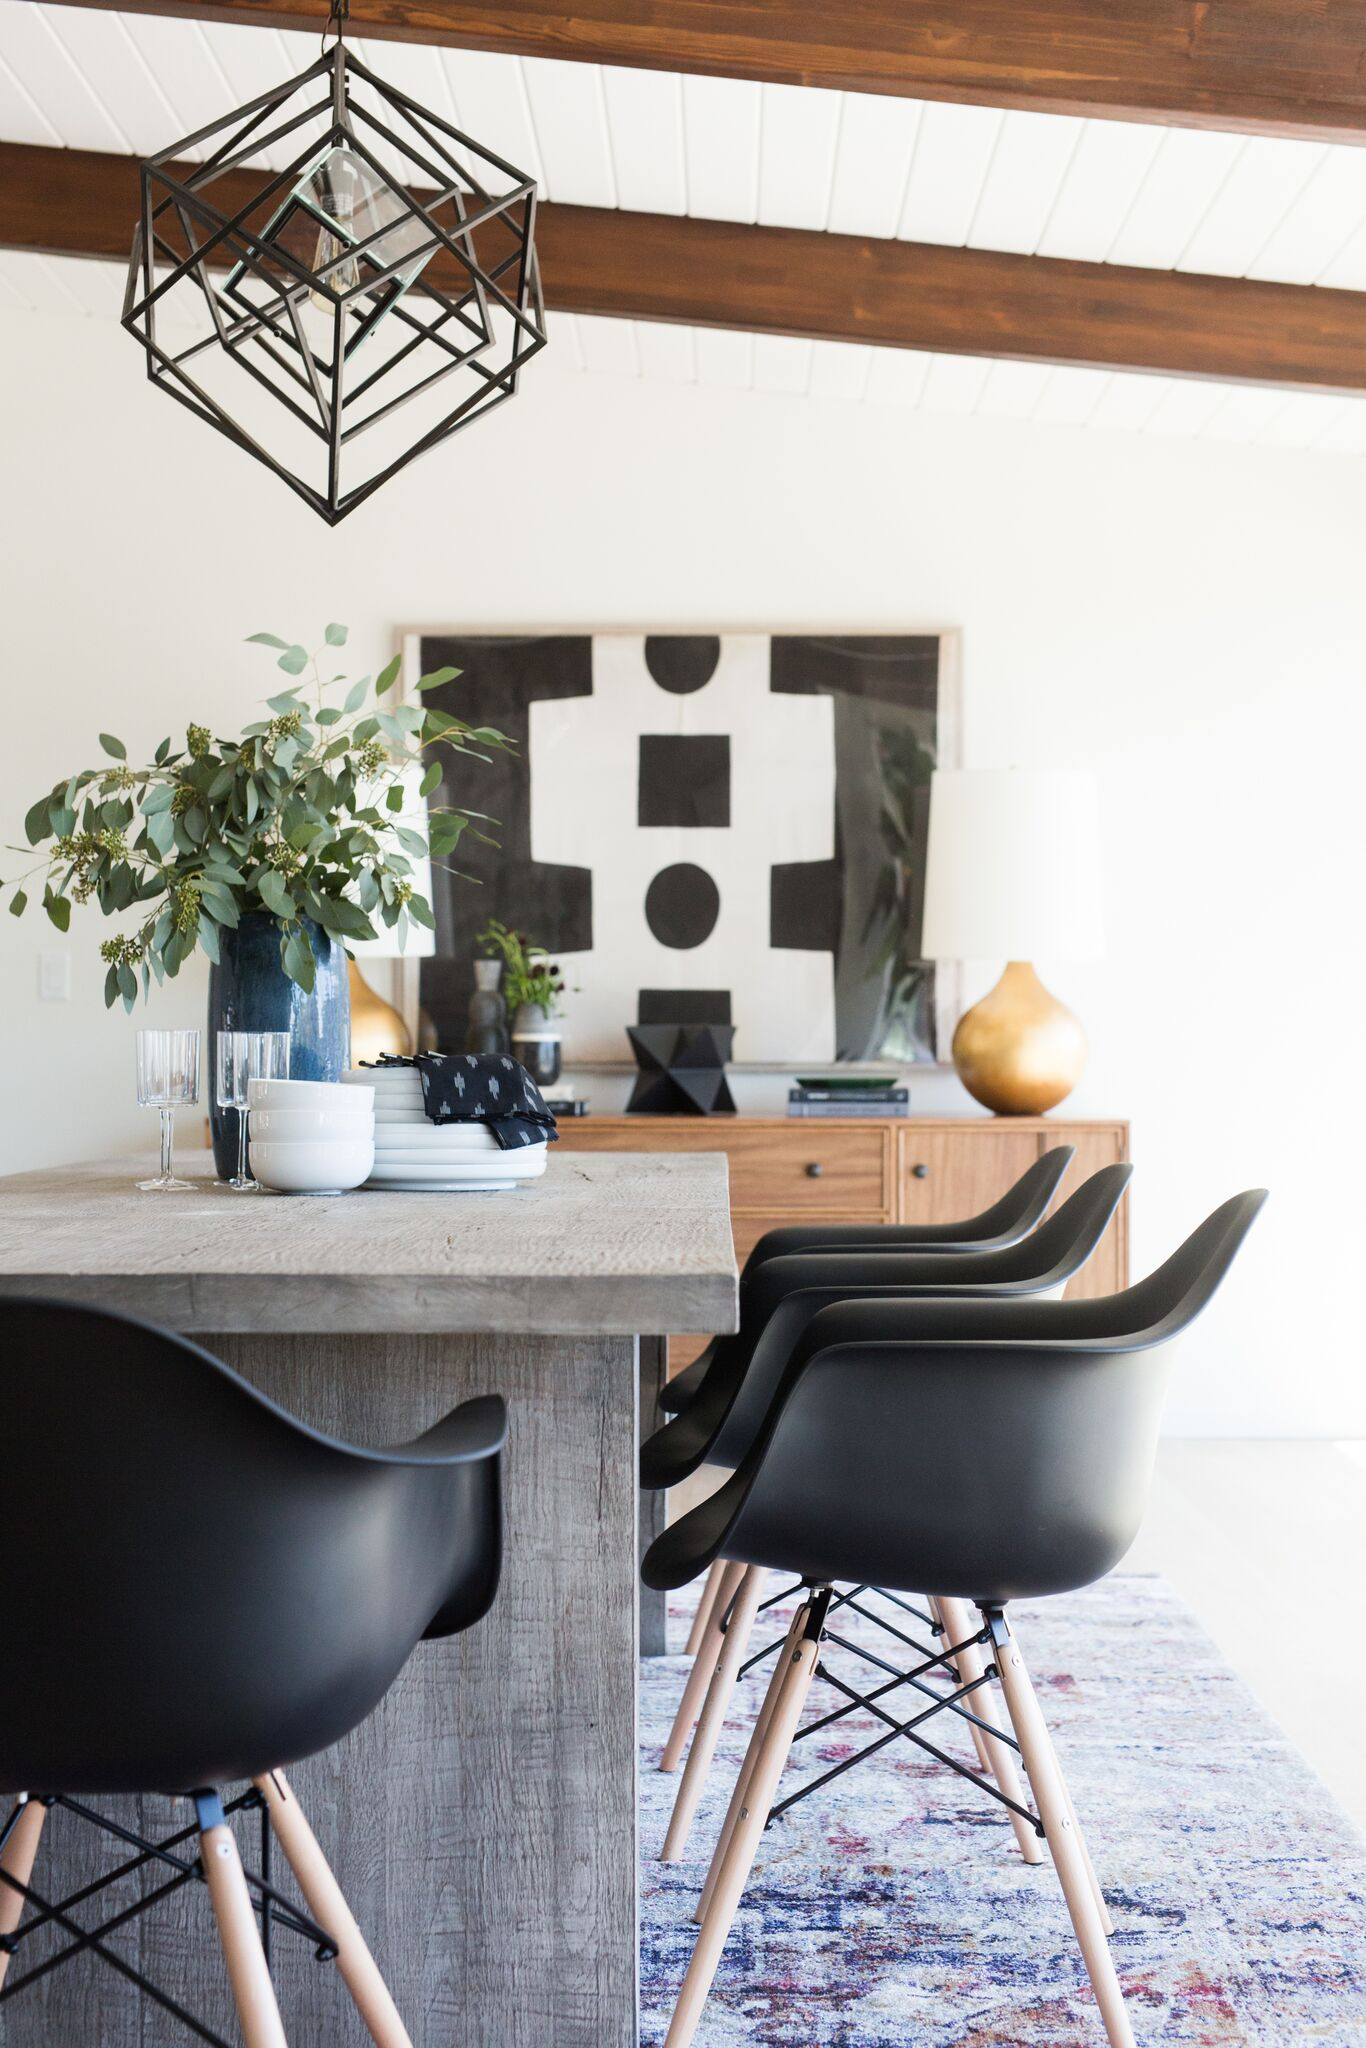 An Eclectic Take on Mid Century Modern